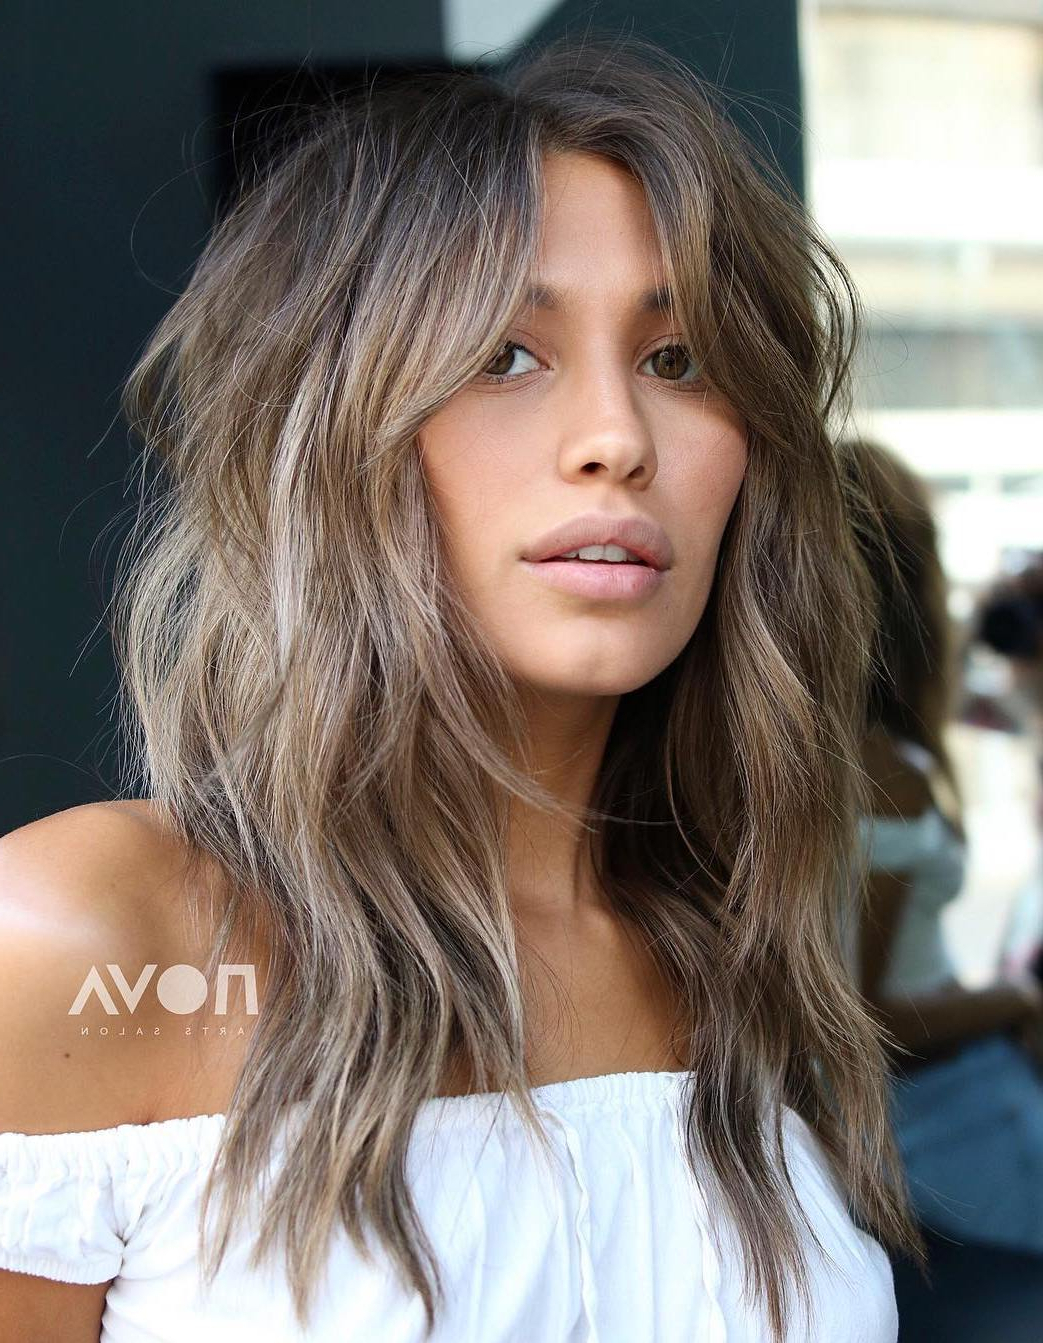 40 Modern Shag Haircuts For Women To Make A Splash In Most Recently Released Delicate Light Blonde Shag Haircuts (View 8 of 20)